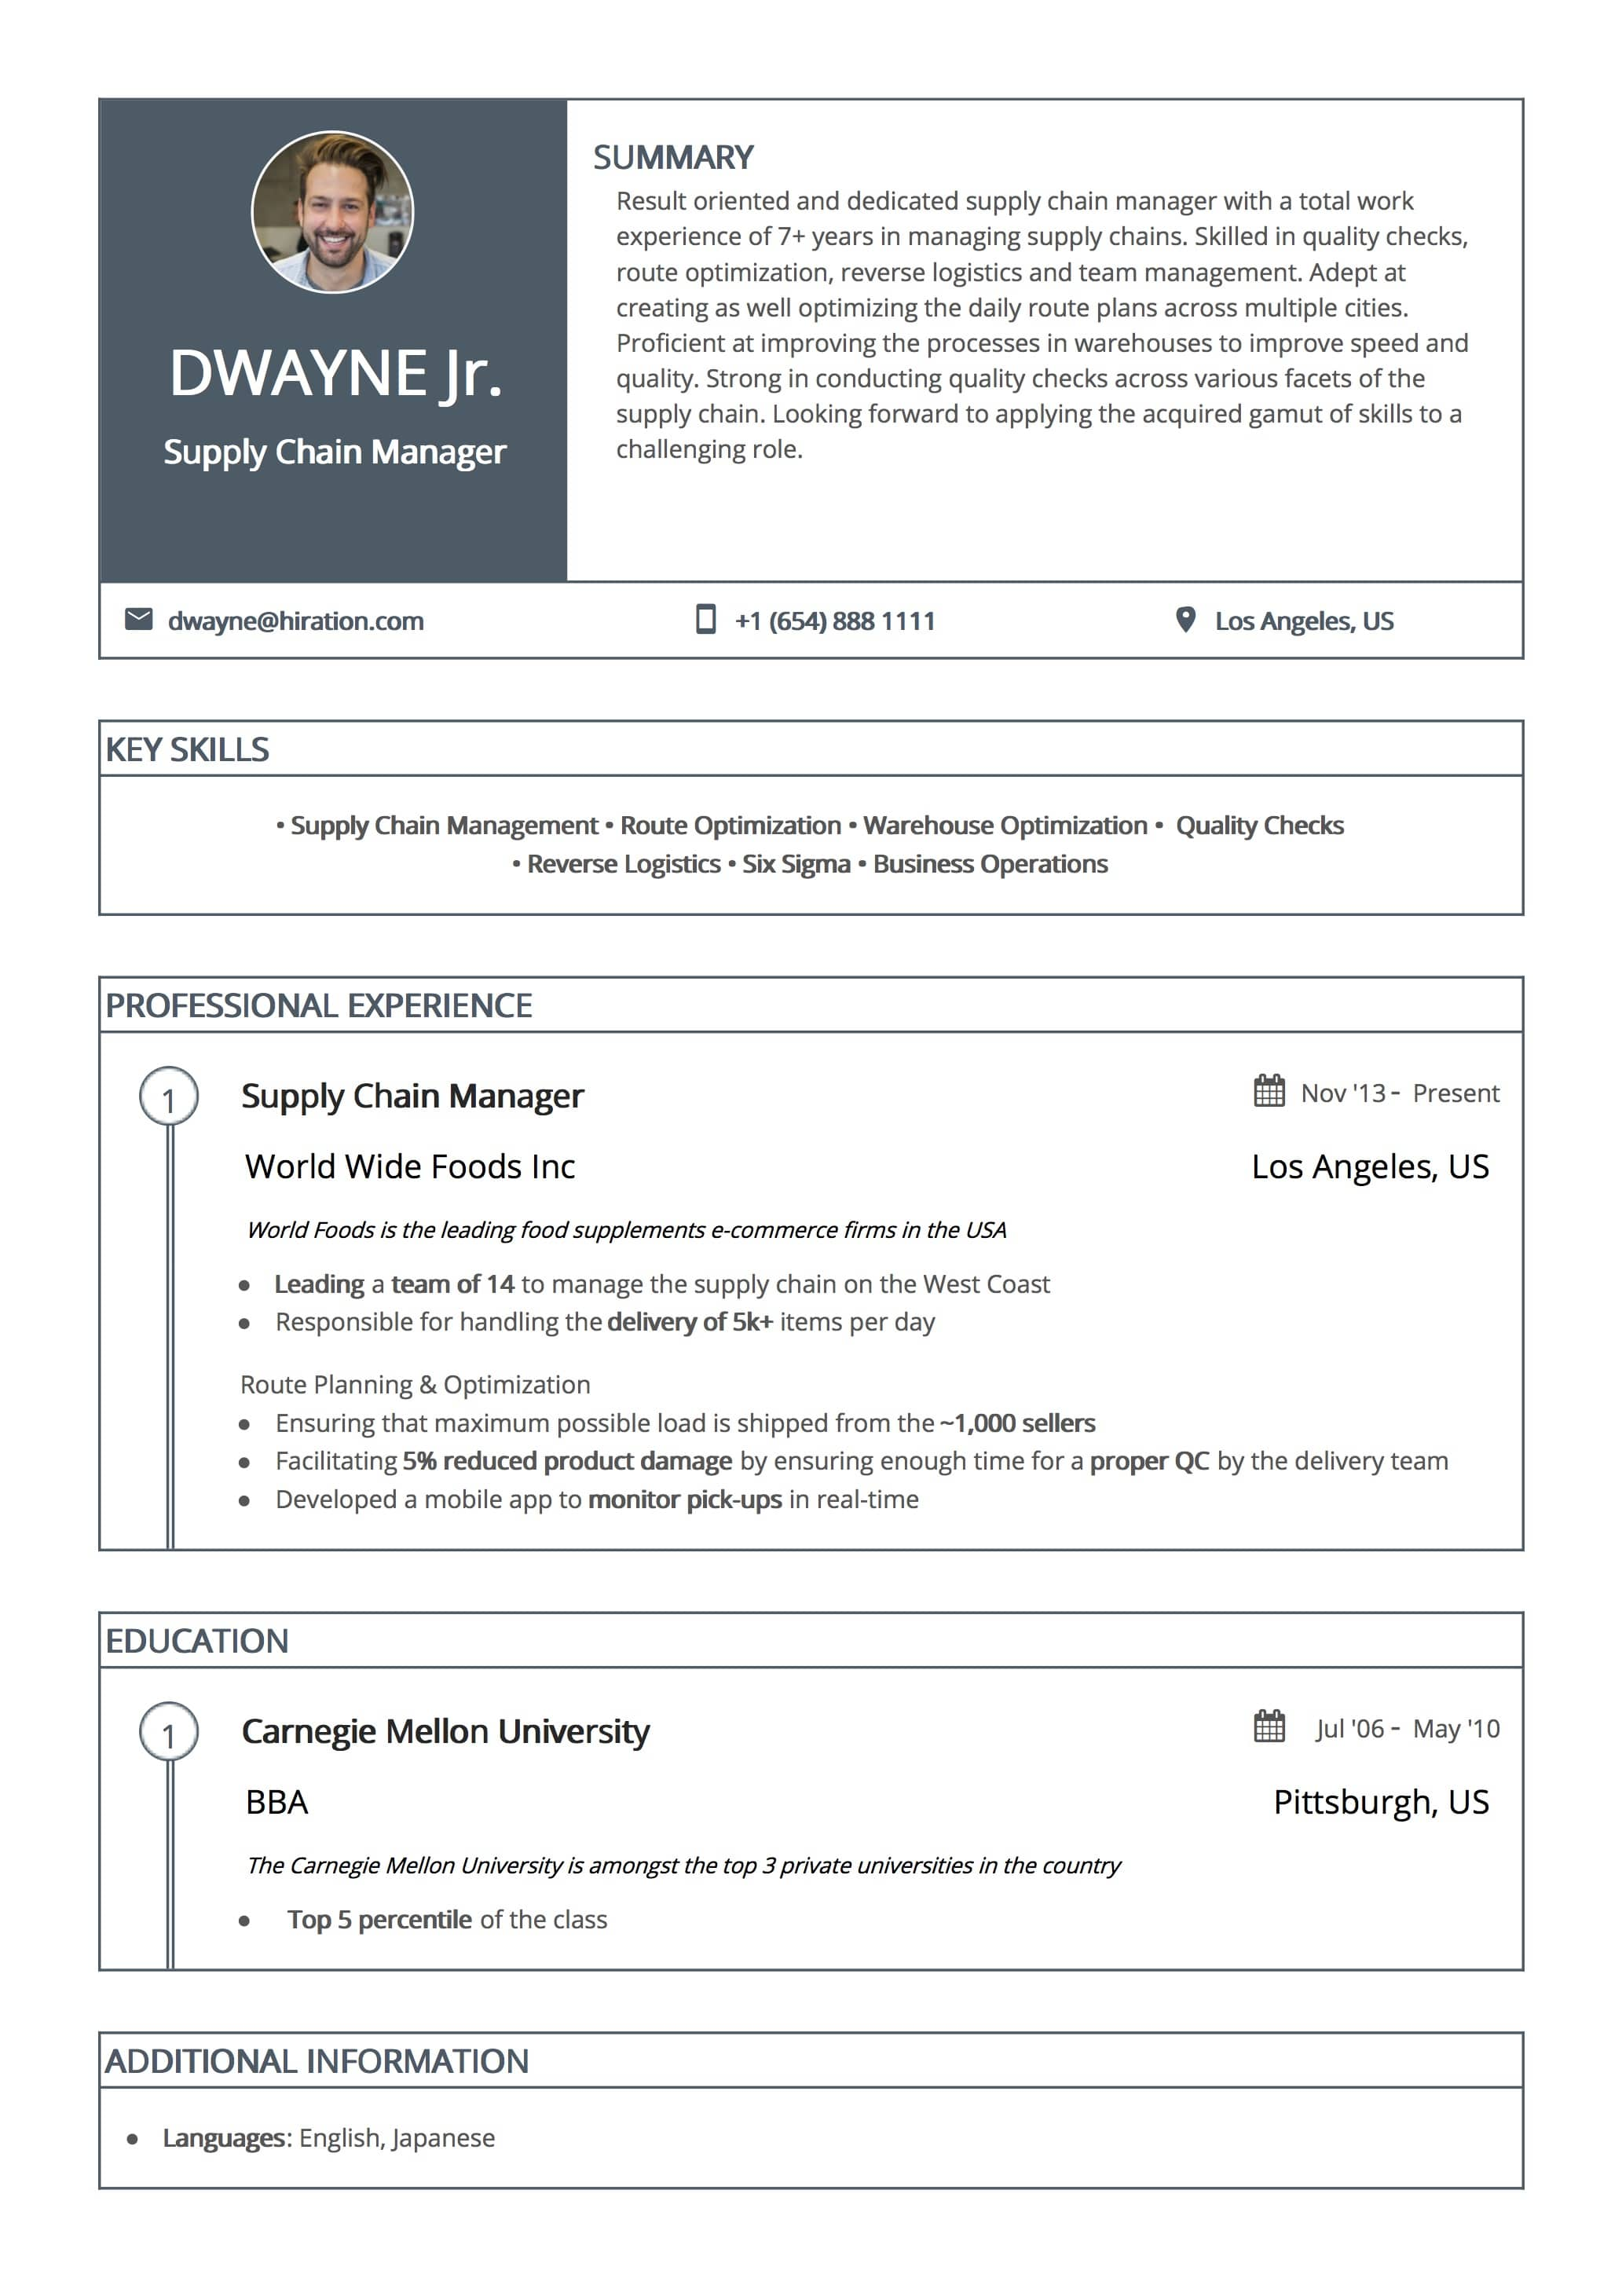 Resume Template: New York